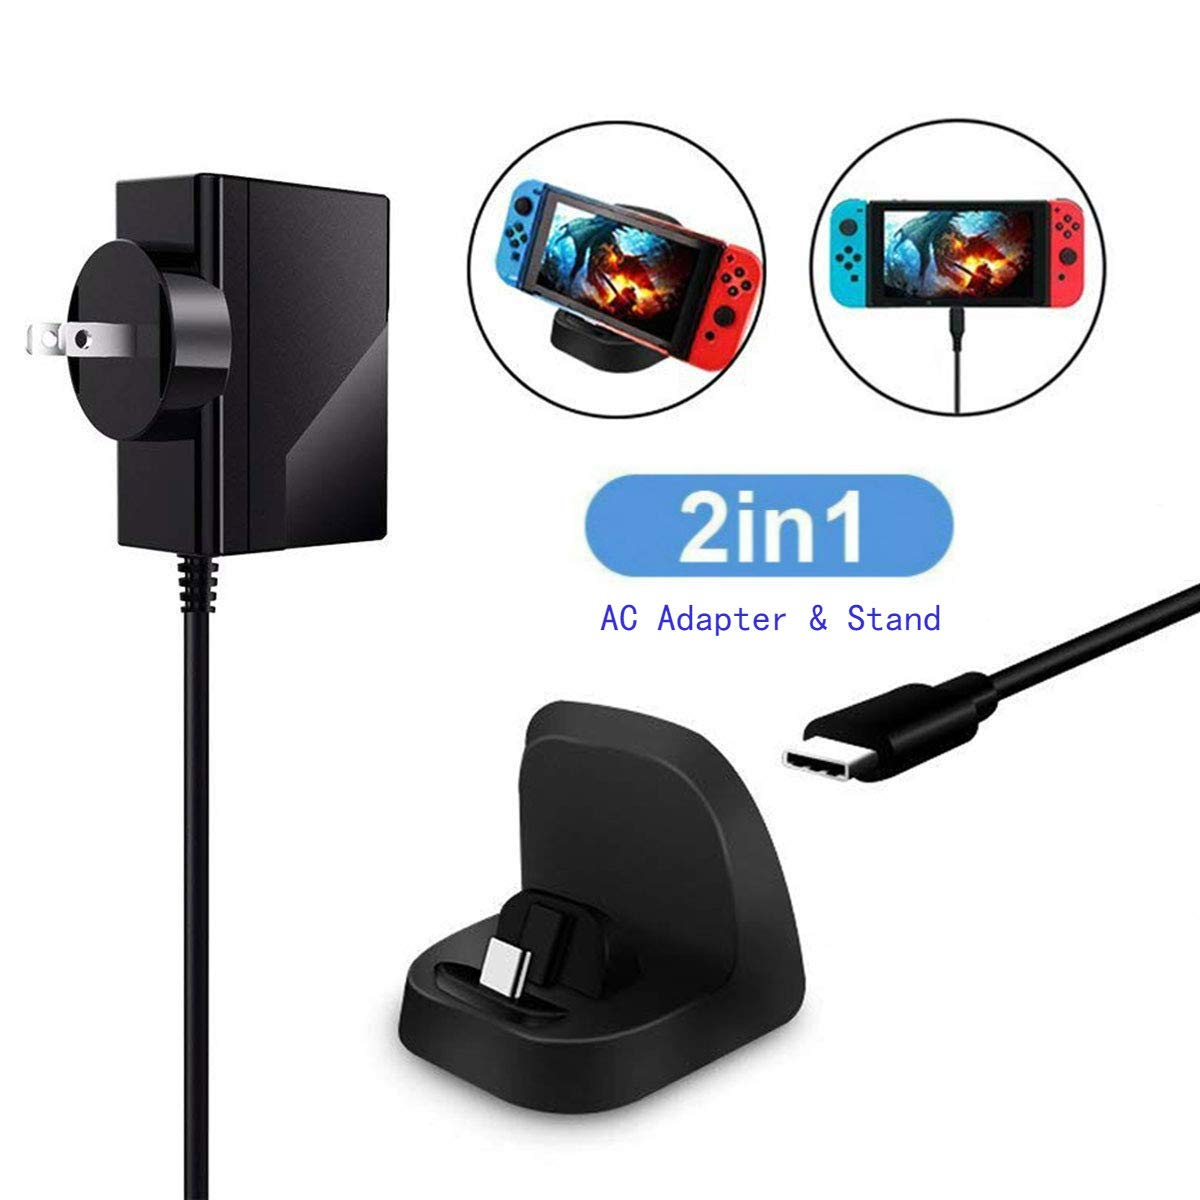 AC Adapter Charger for Nintendo Switch, Nintendo Switch Charging Dock Stand Station with USB Type-C Cable 2 IN 1 Fast Charging Power Delivery 3.0 Portable Power Adapter For Nintendo Switch Accessories